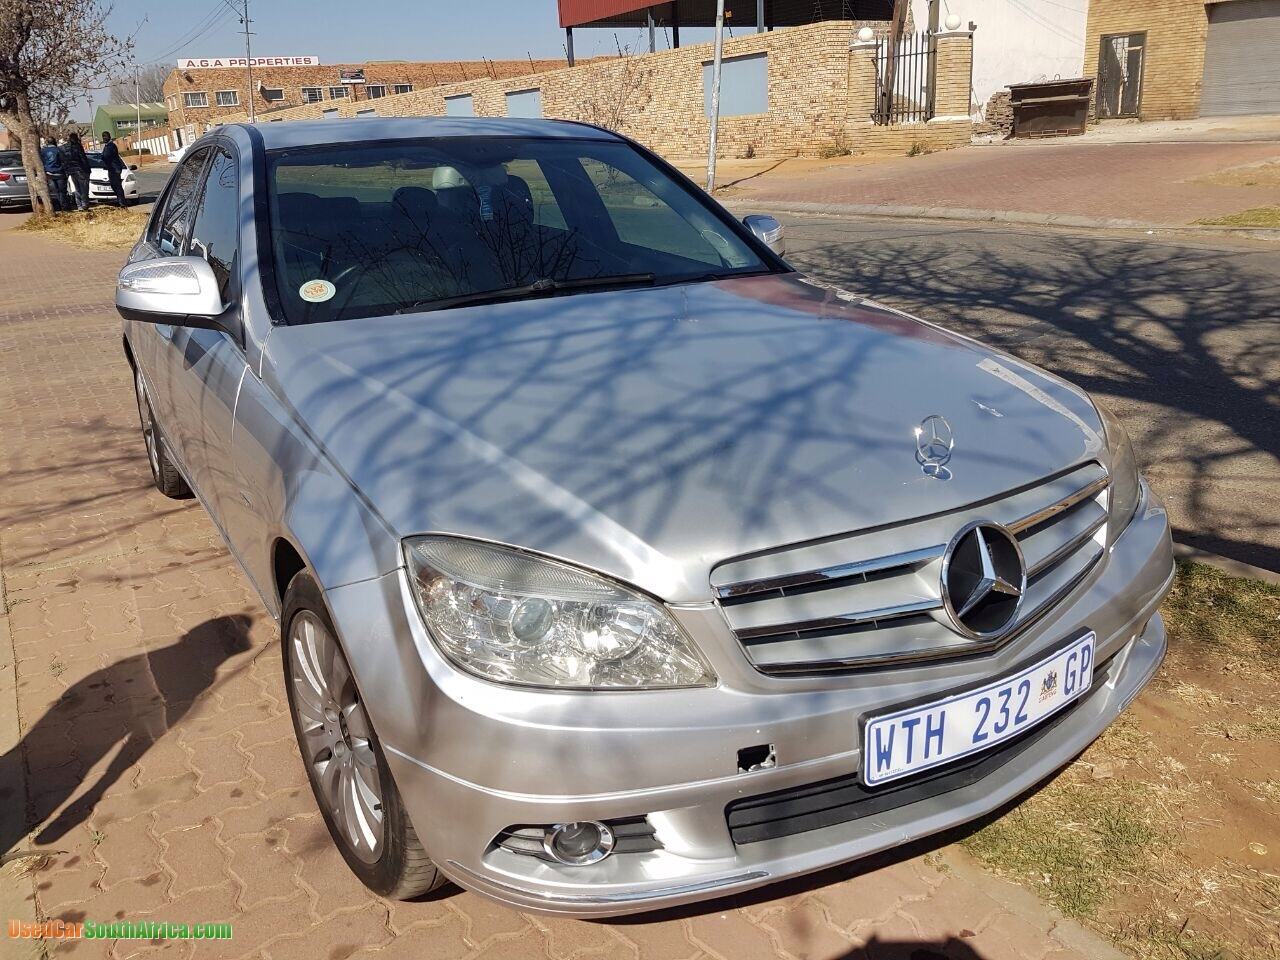 2009 Mercedes Benz C200 Used Car For Sale In Johannesburg